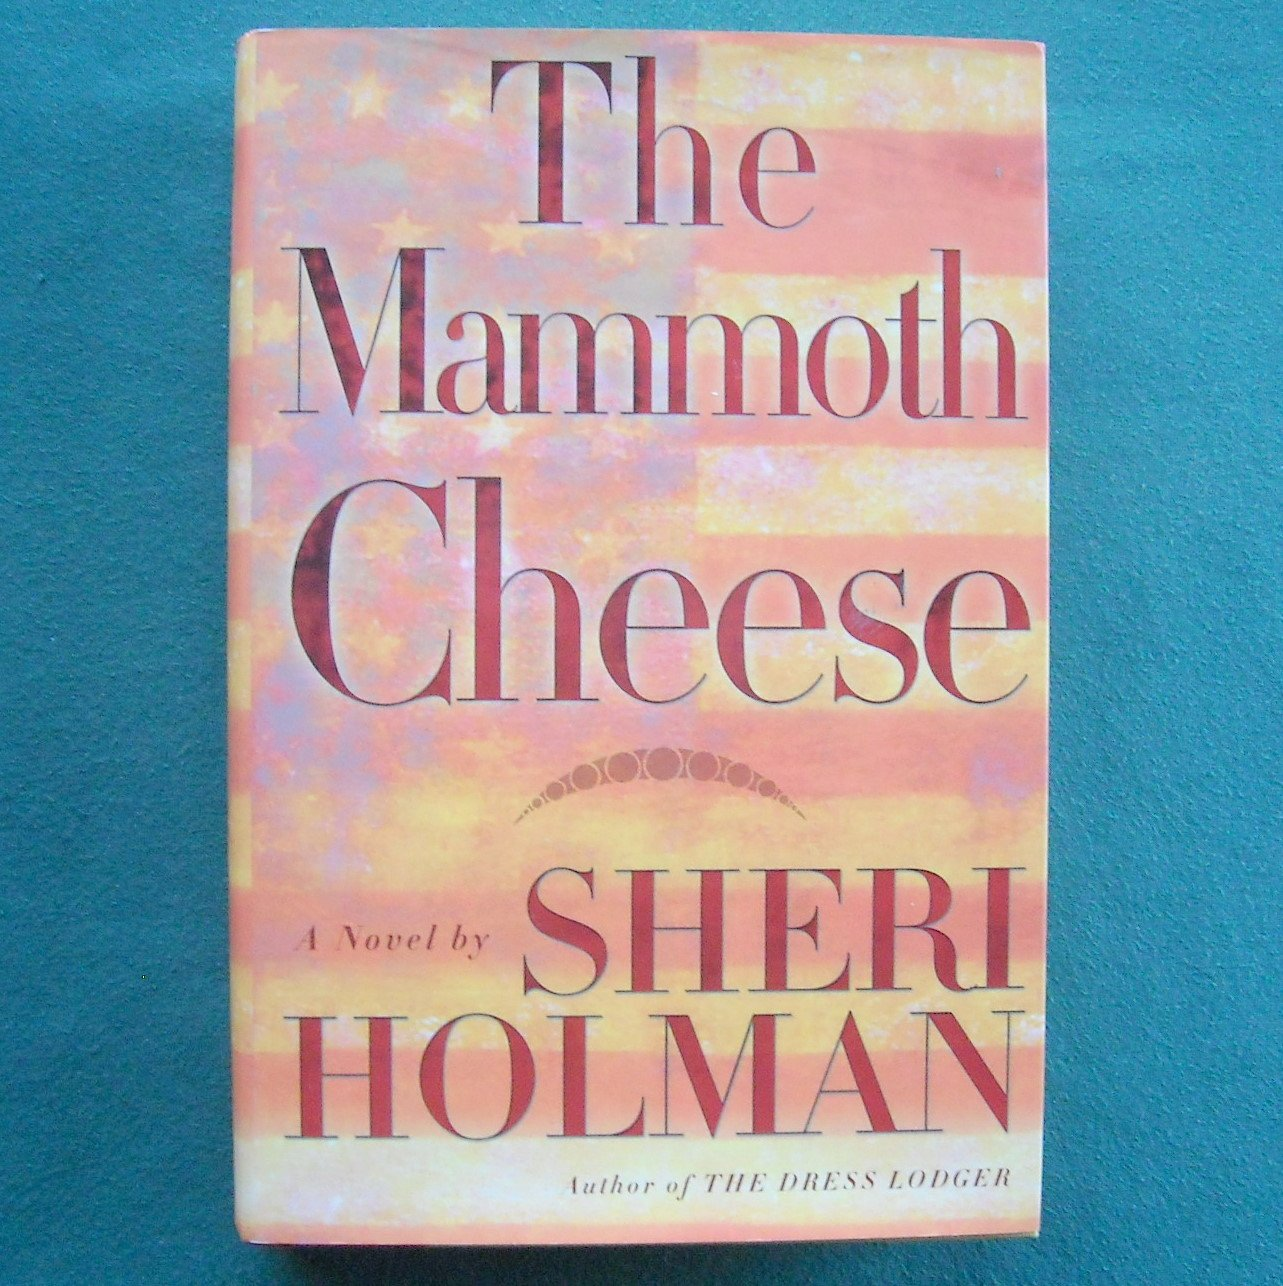 Sheri Holman The Mammoth Cheese hardcover ISBN 0871139006